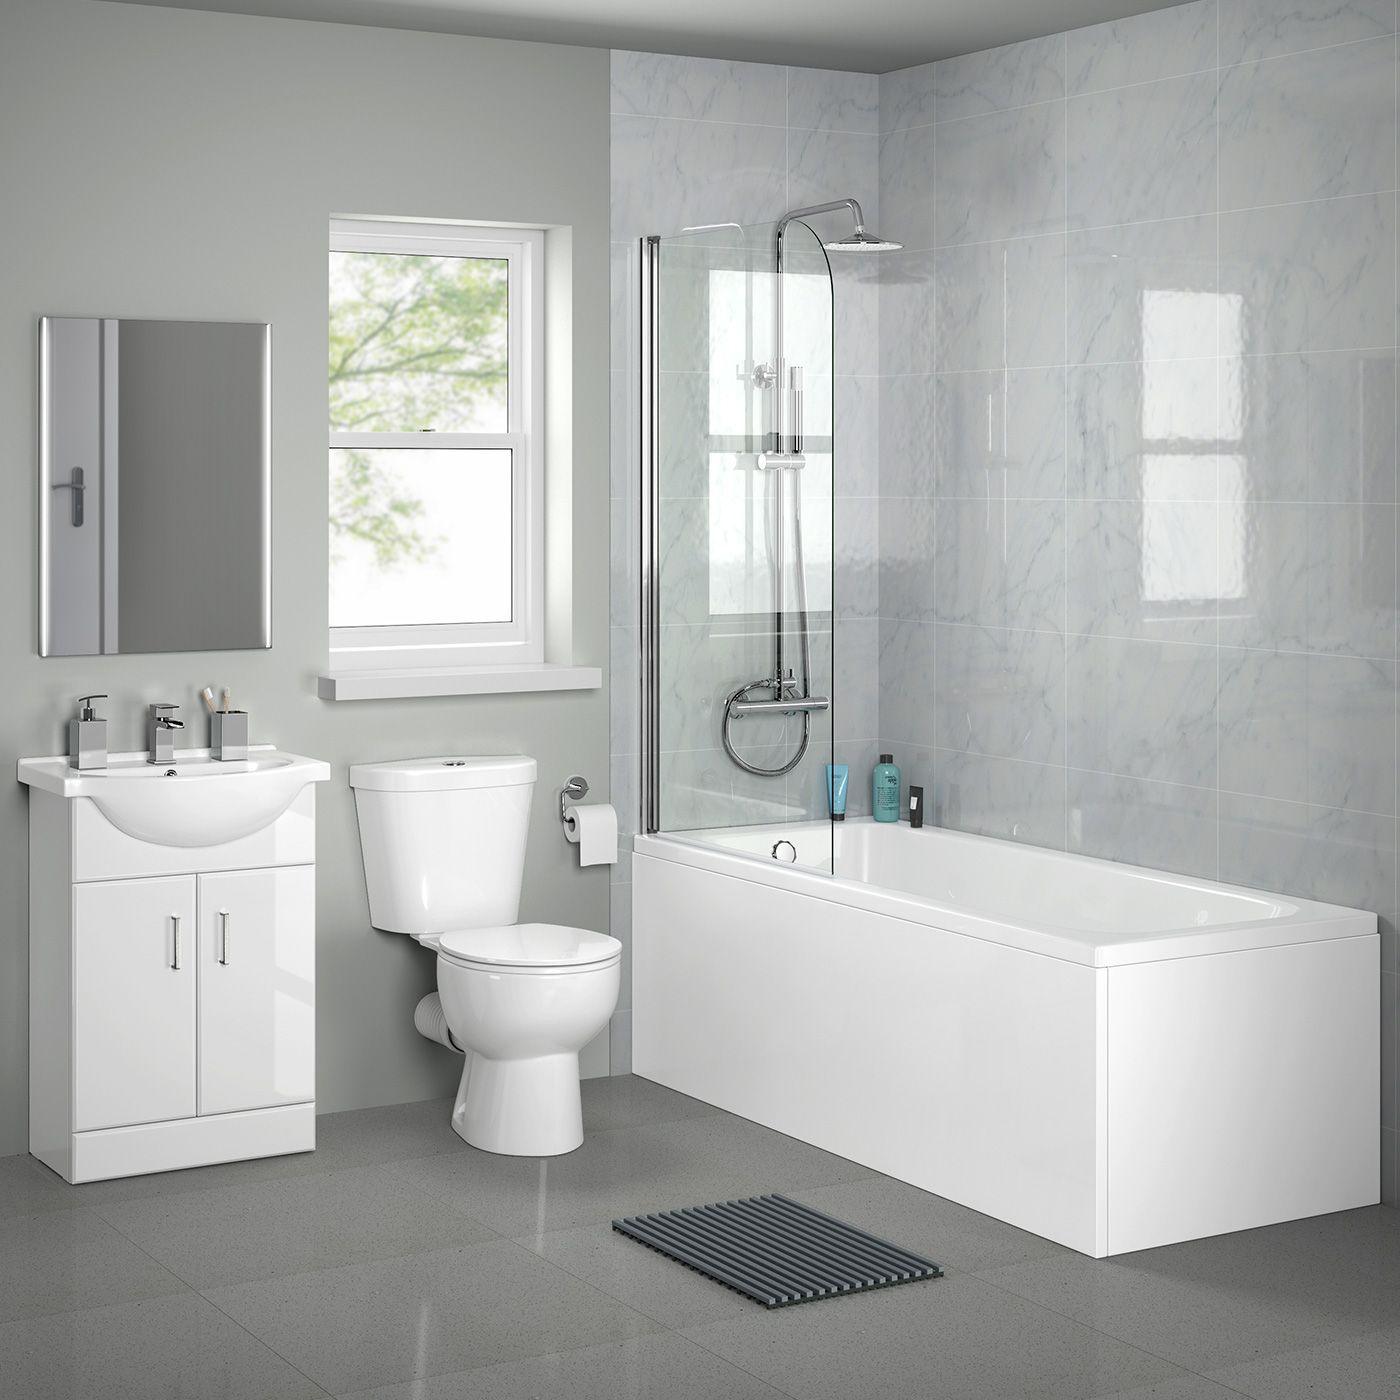 Basic range family bathroom suite with vanity unit to avoid need for ...